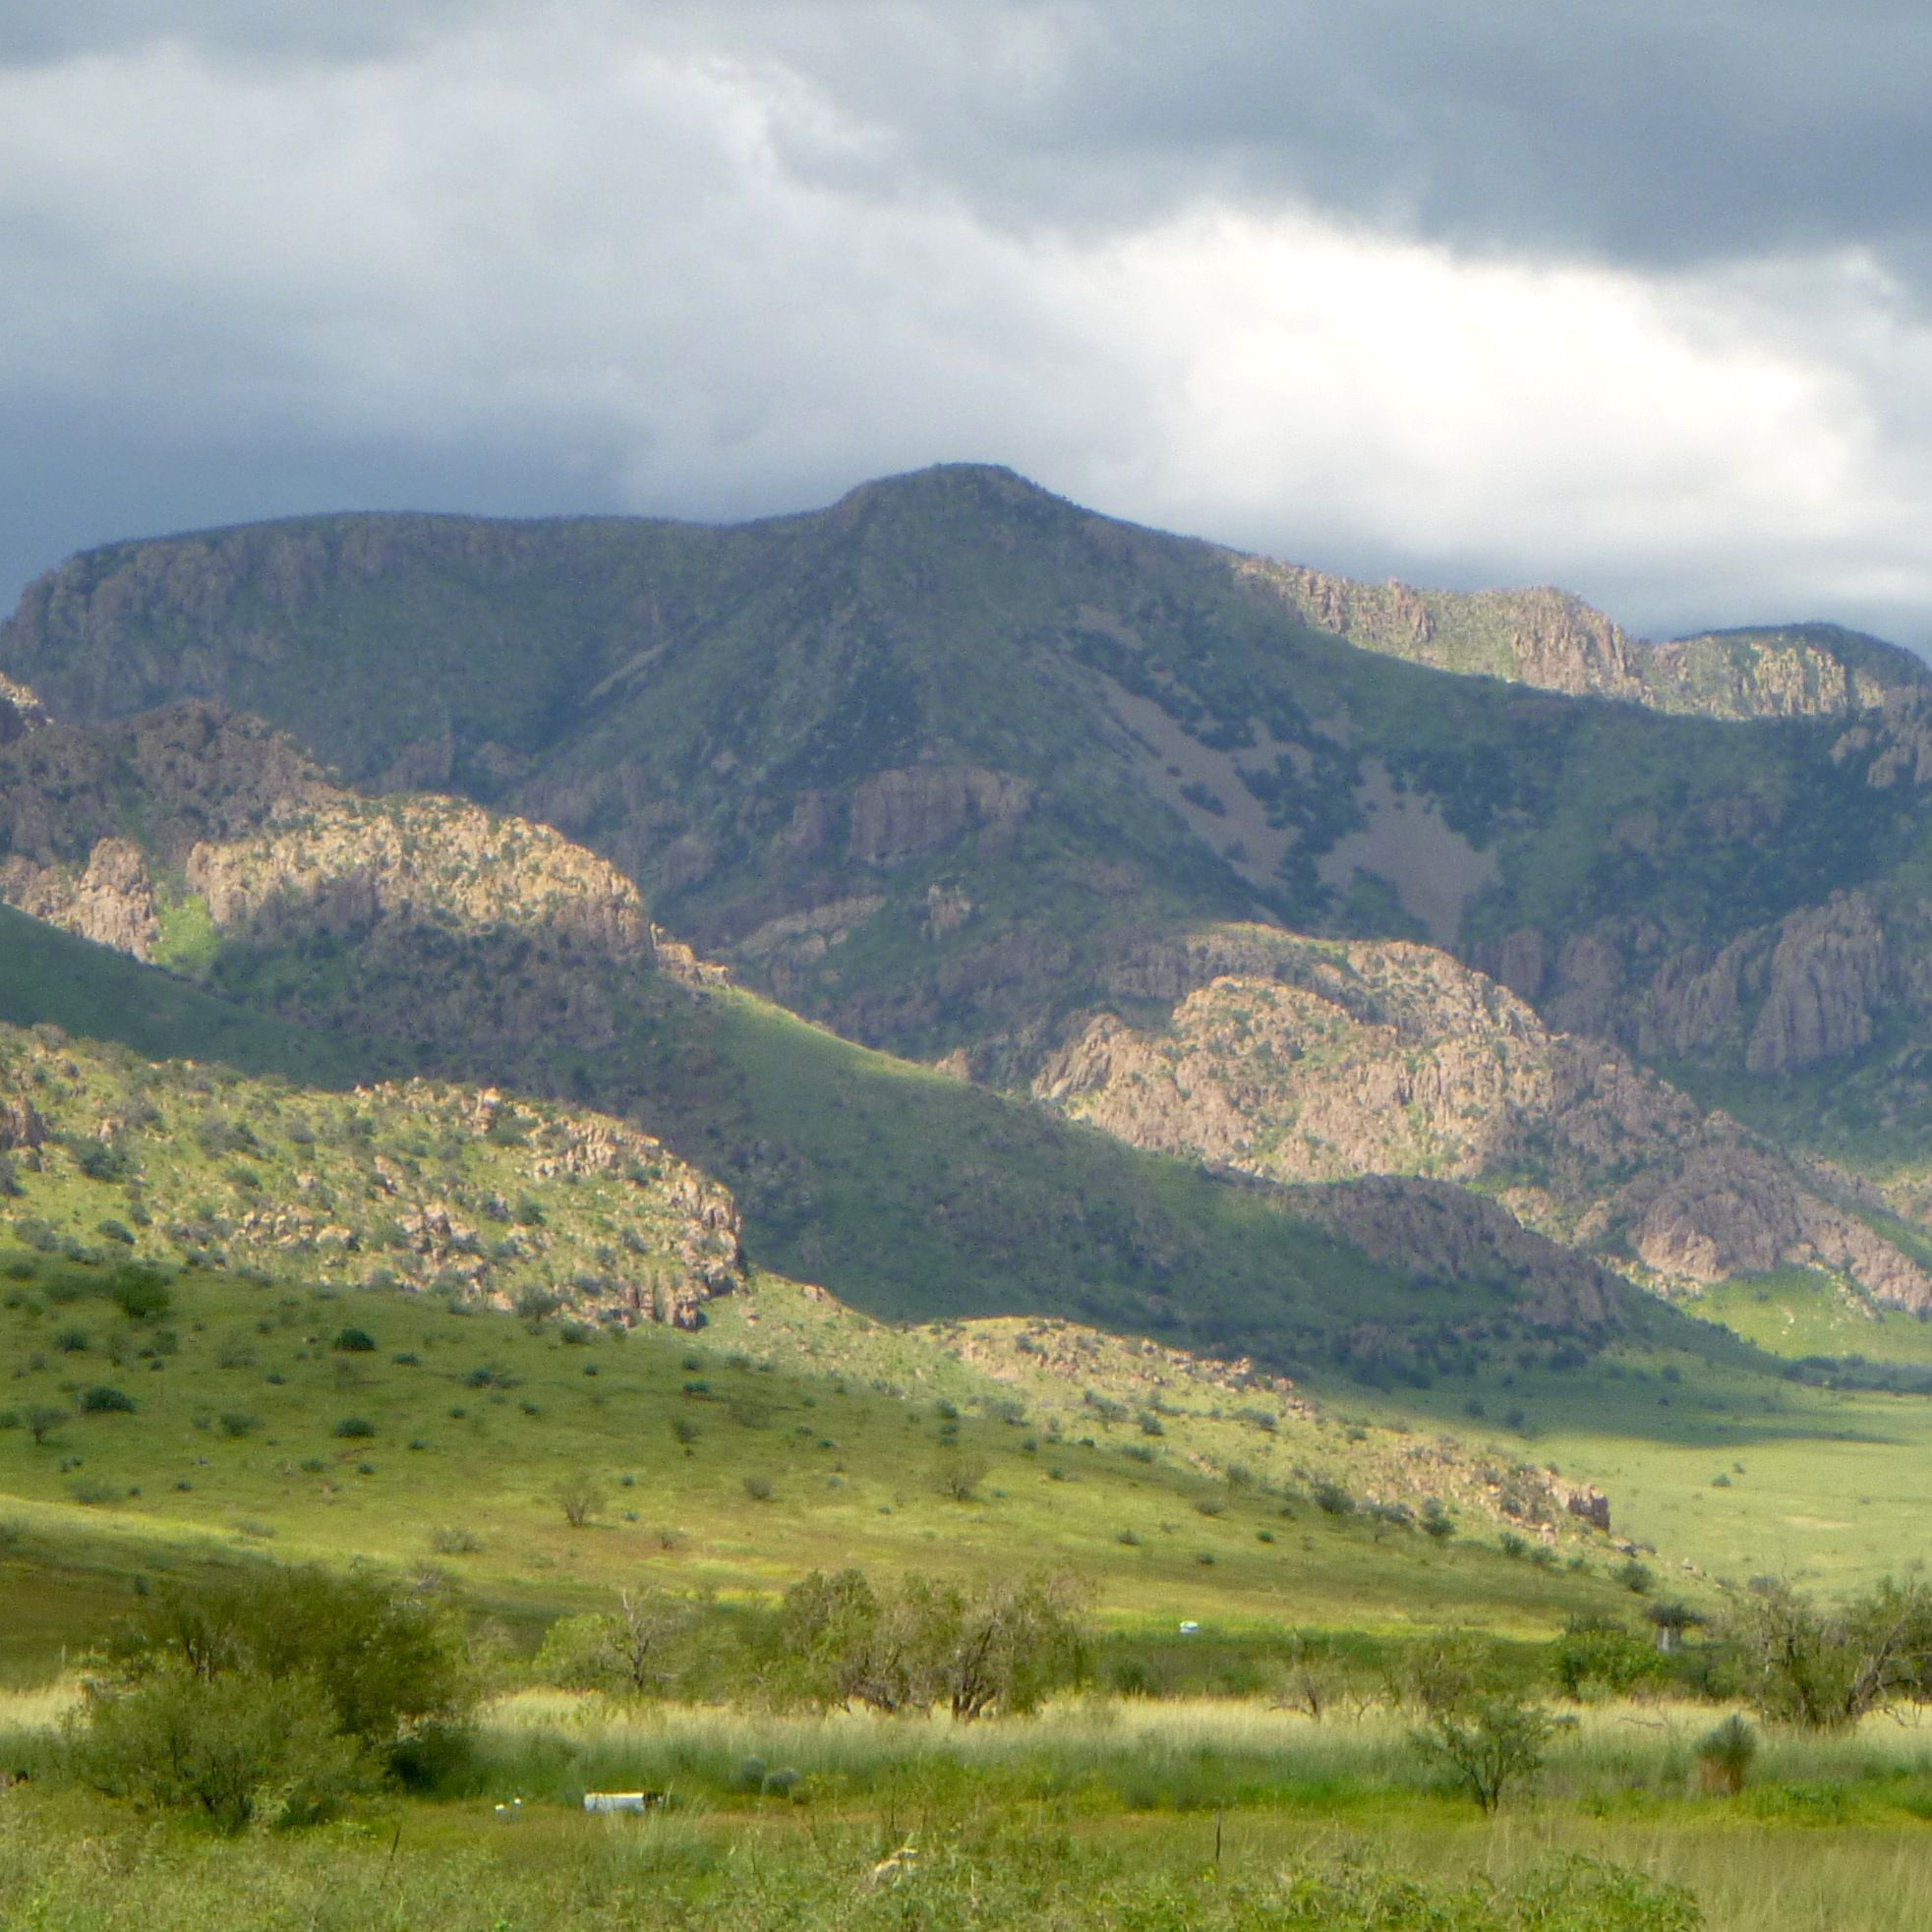 Caption: In the summer monsoon season, grass carpets the Chiricahua foothills., Credit: Aengus Anderson